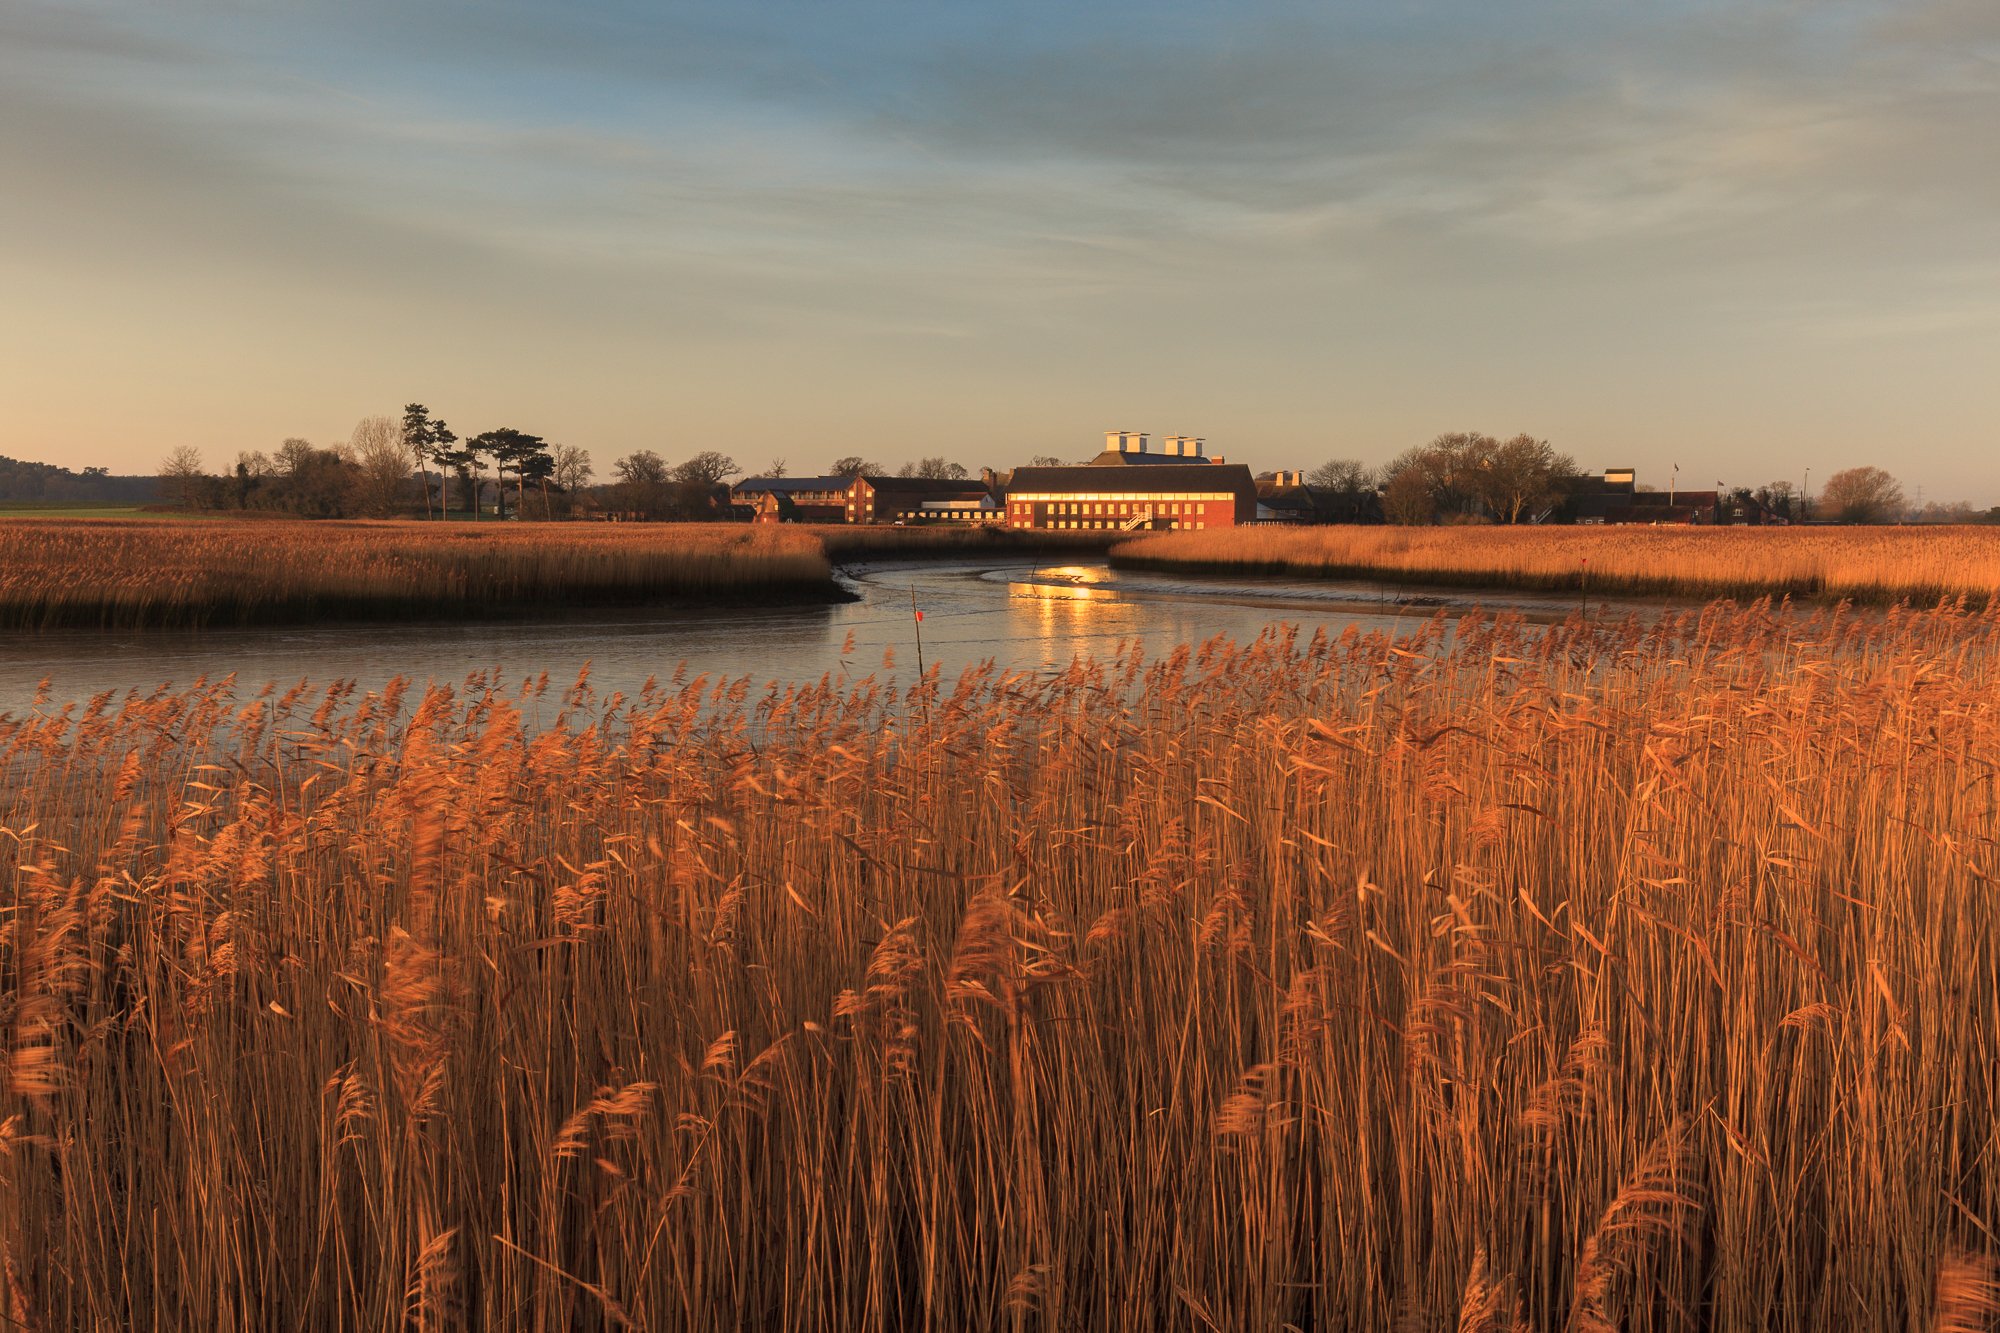 The view across the reed beds in warm winter light